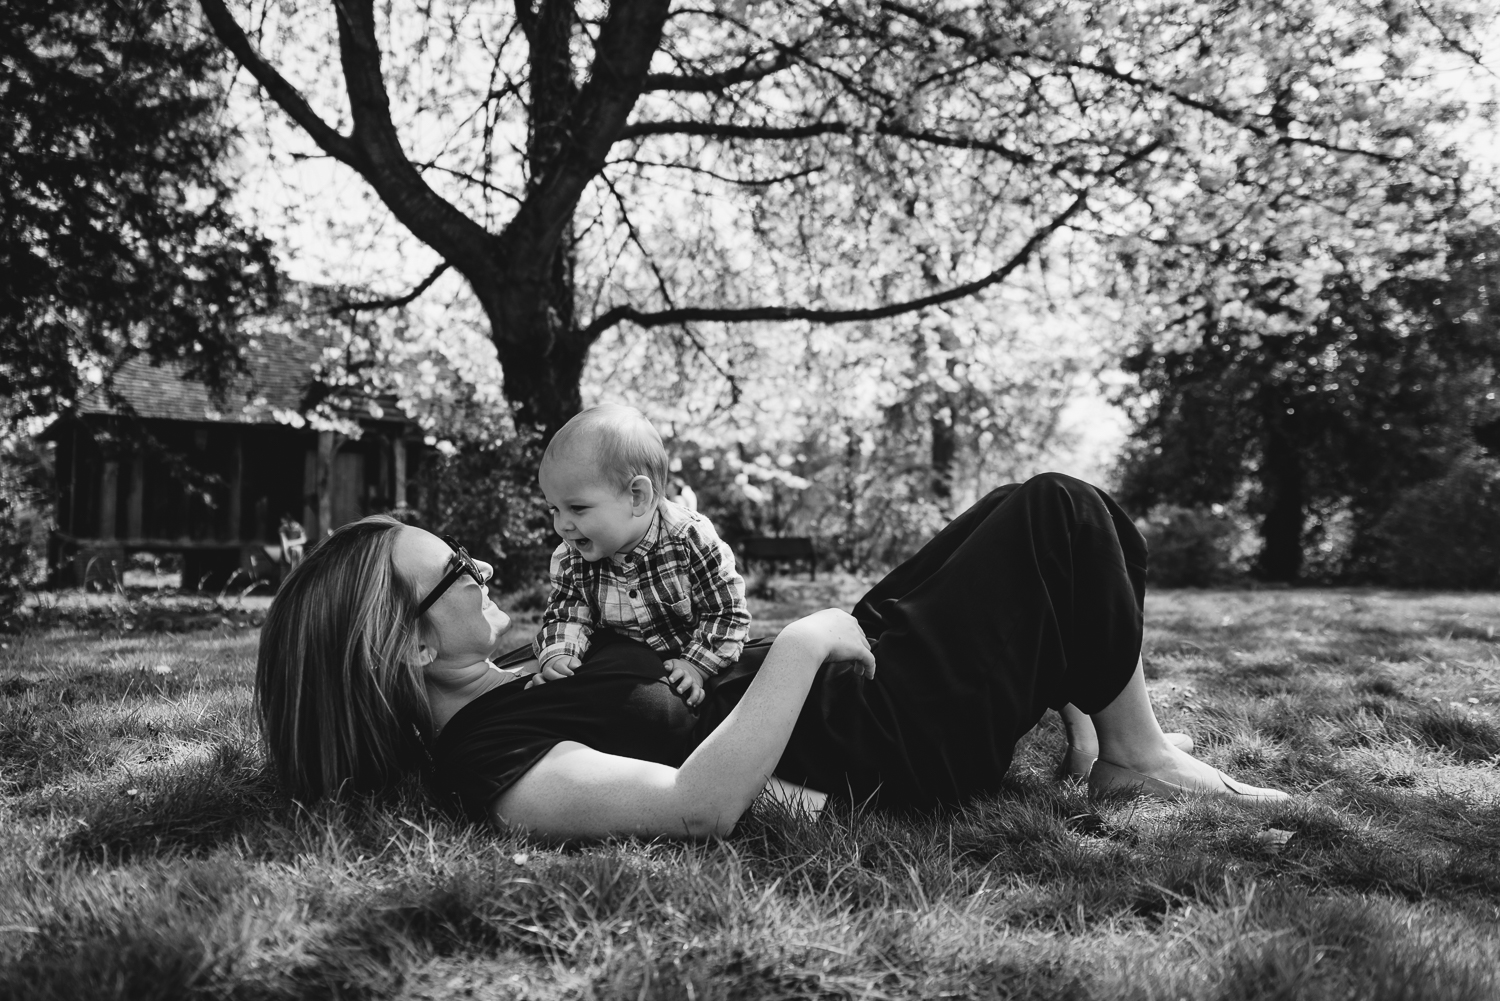 Black and white photograph of a mother and baby relaxing together under the shade of a cherry blossom tree in Wandlebury country park, Cambridge